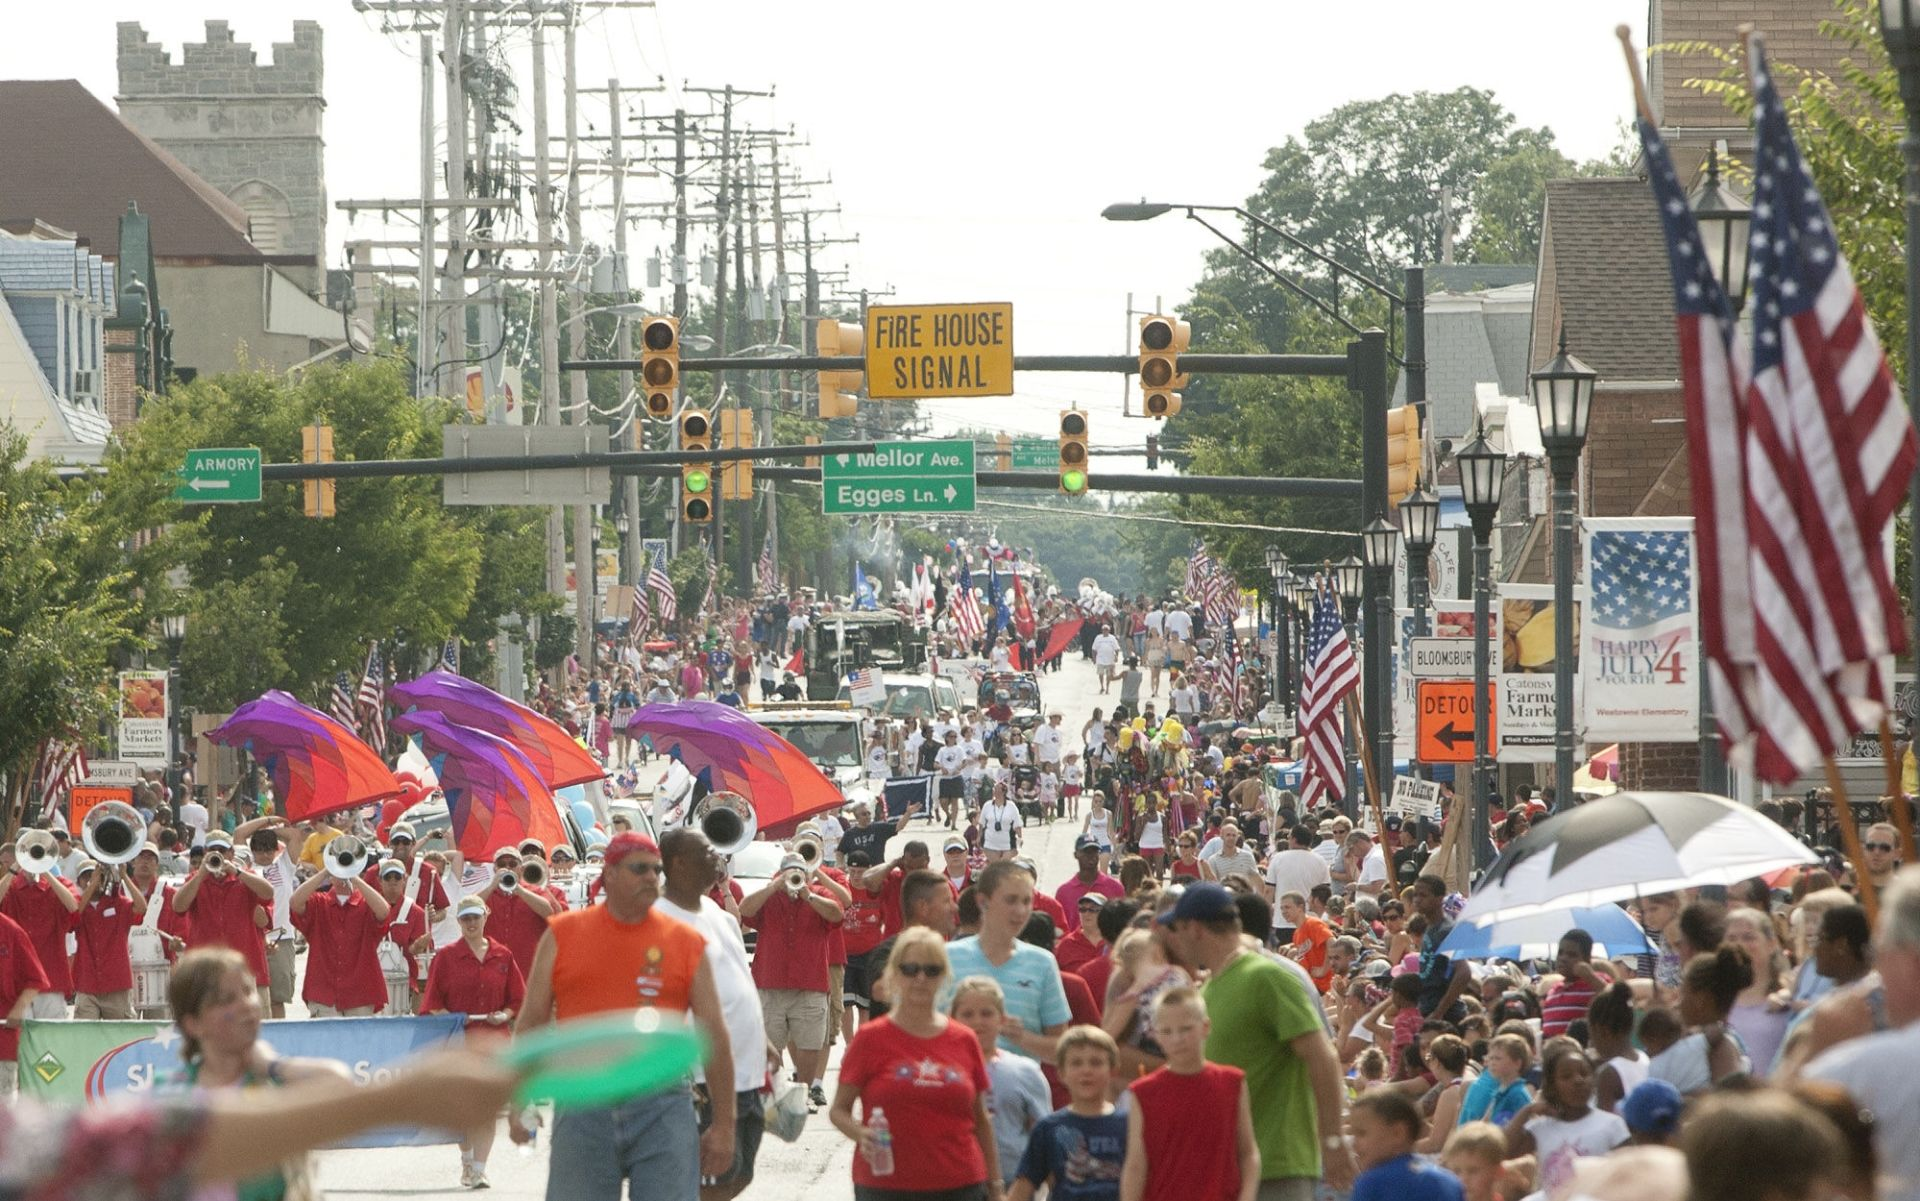 Local Top 10: Preparing for the 4th of July in Catonsville!